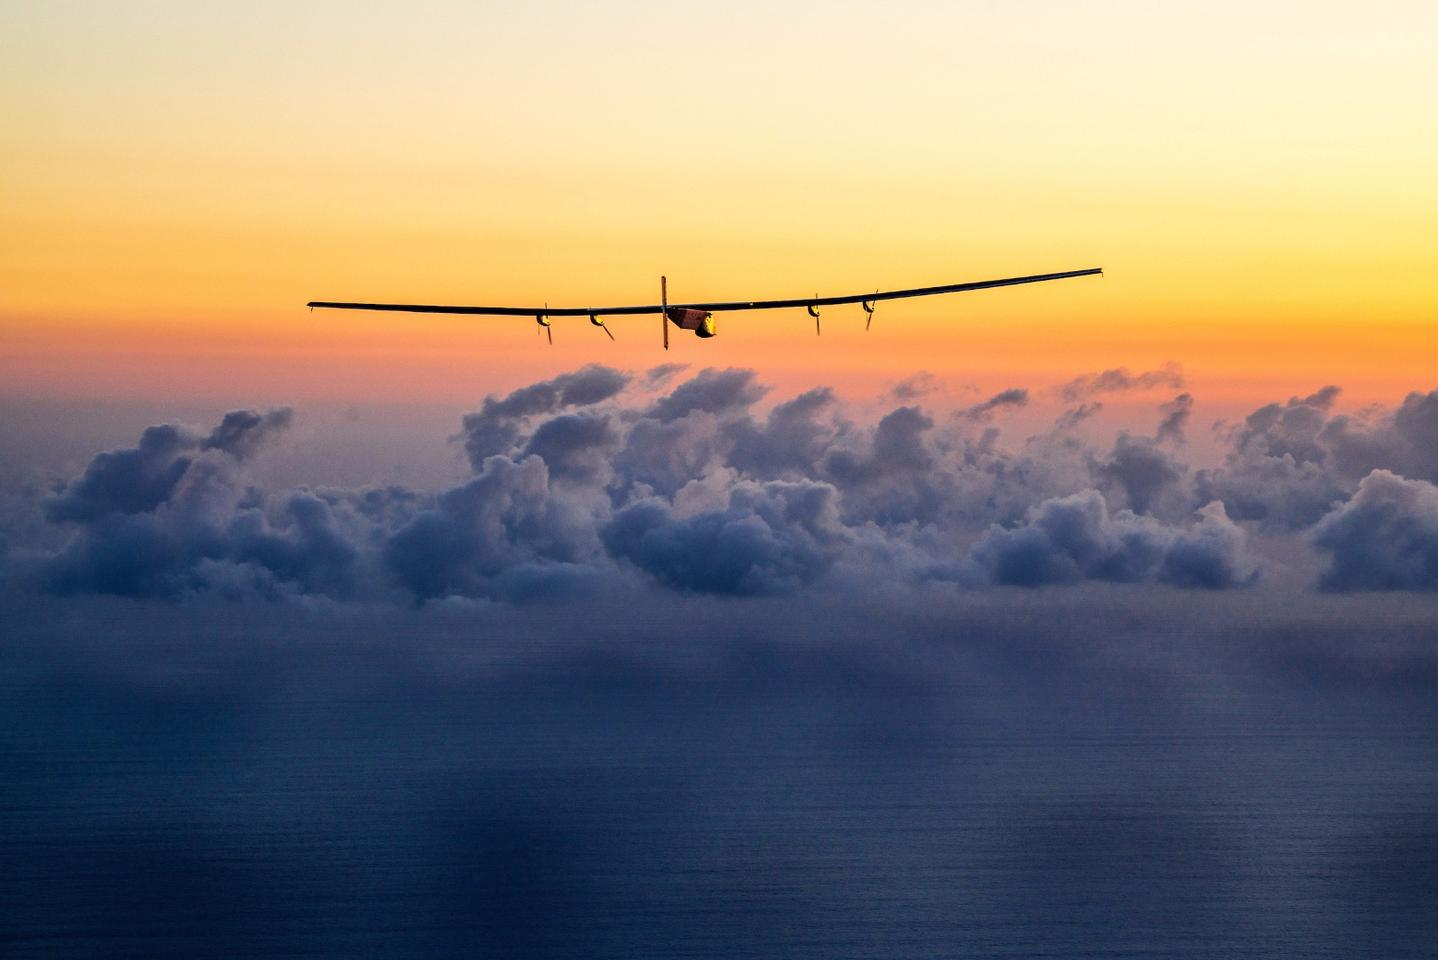 The Solar Impulse 2 solar-powered aircraft, seen during its circumnavigation of the globe